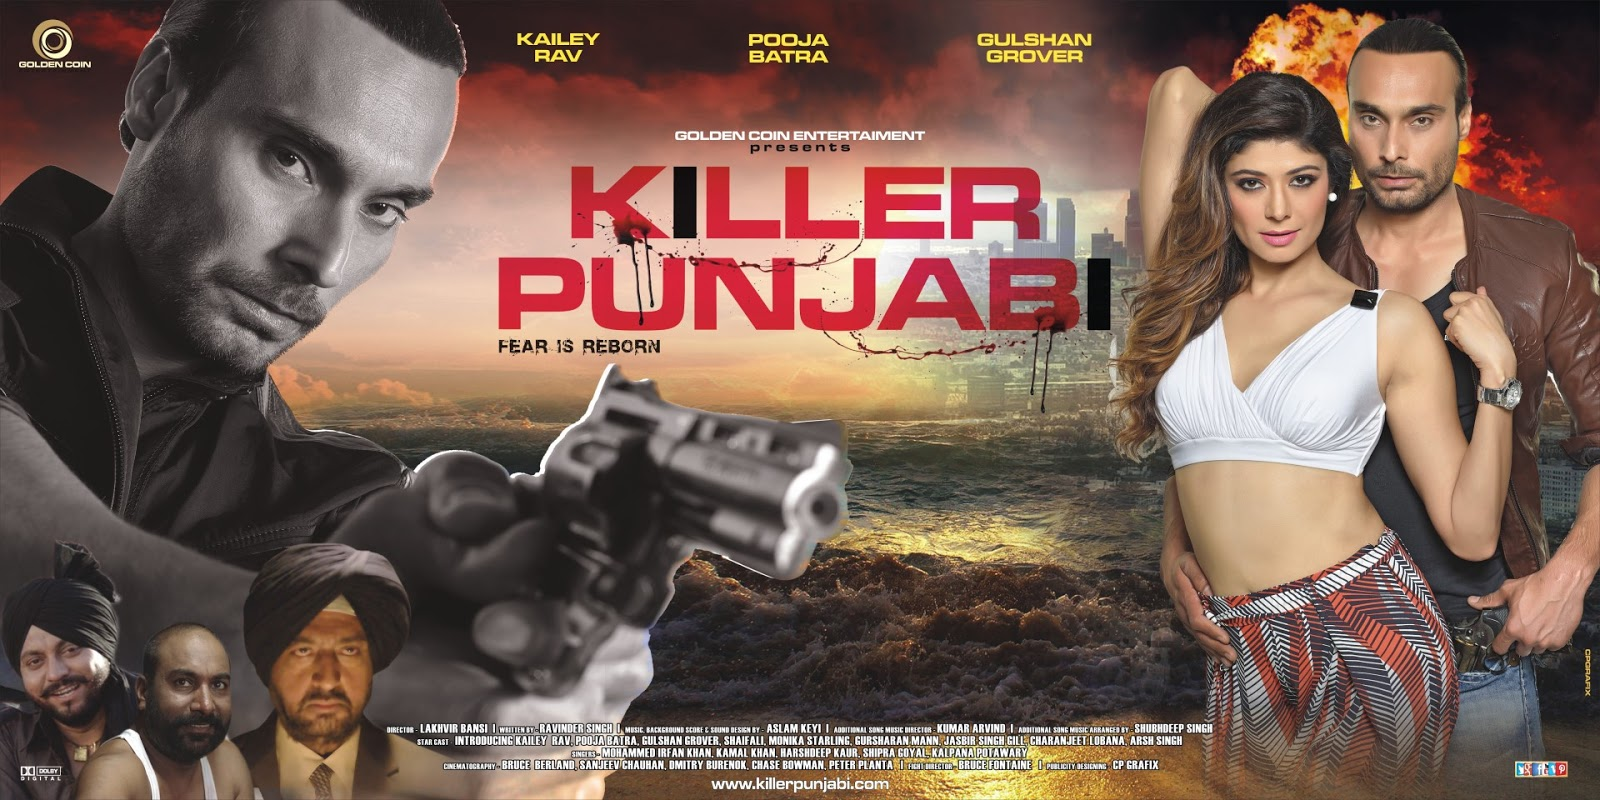 Complete cast and crew of Killer Punjabi (2016) bollywood hindi movie wiki, poster, Trailer, music list - Puja Batra , Gulshan Grover and M'laah Kaur Singh, Movie release date February 19, 2016